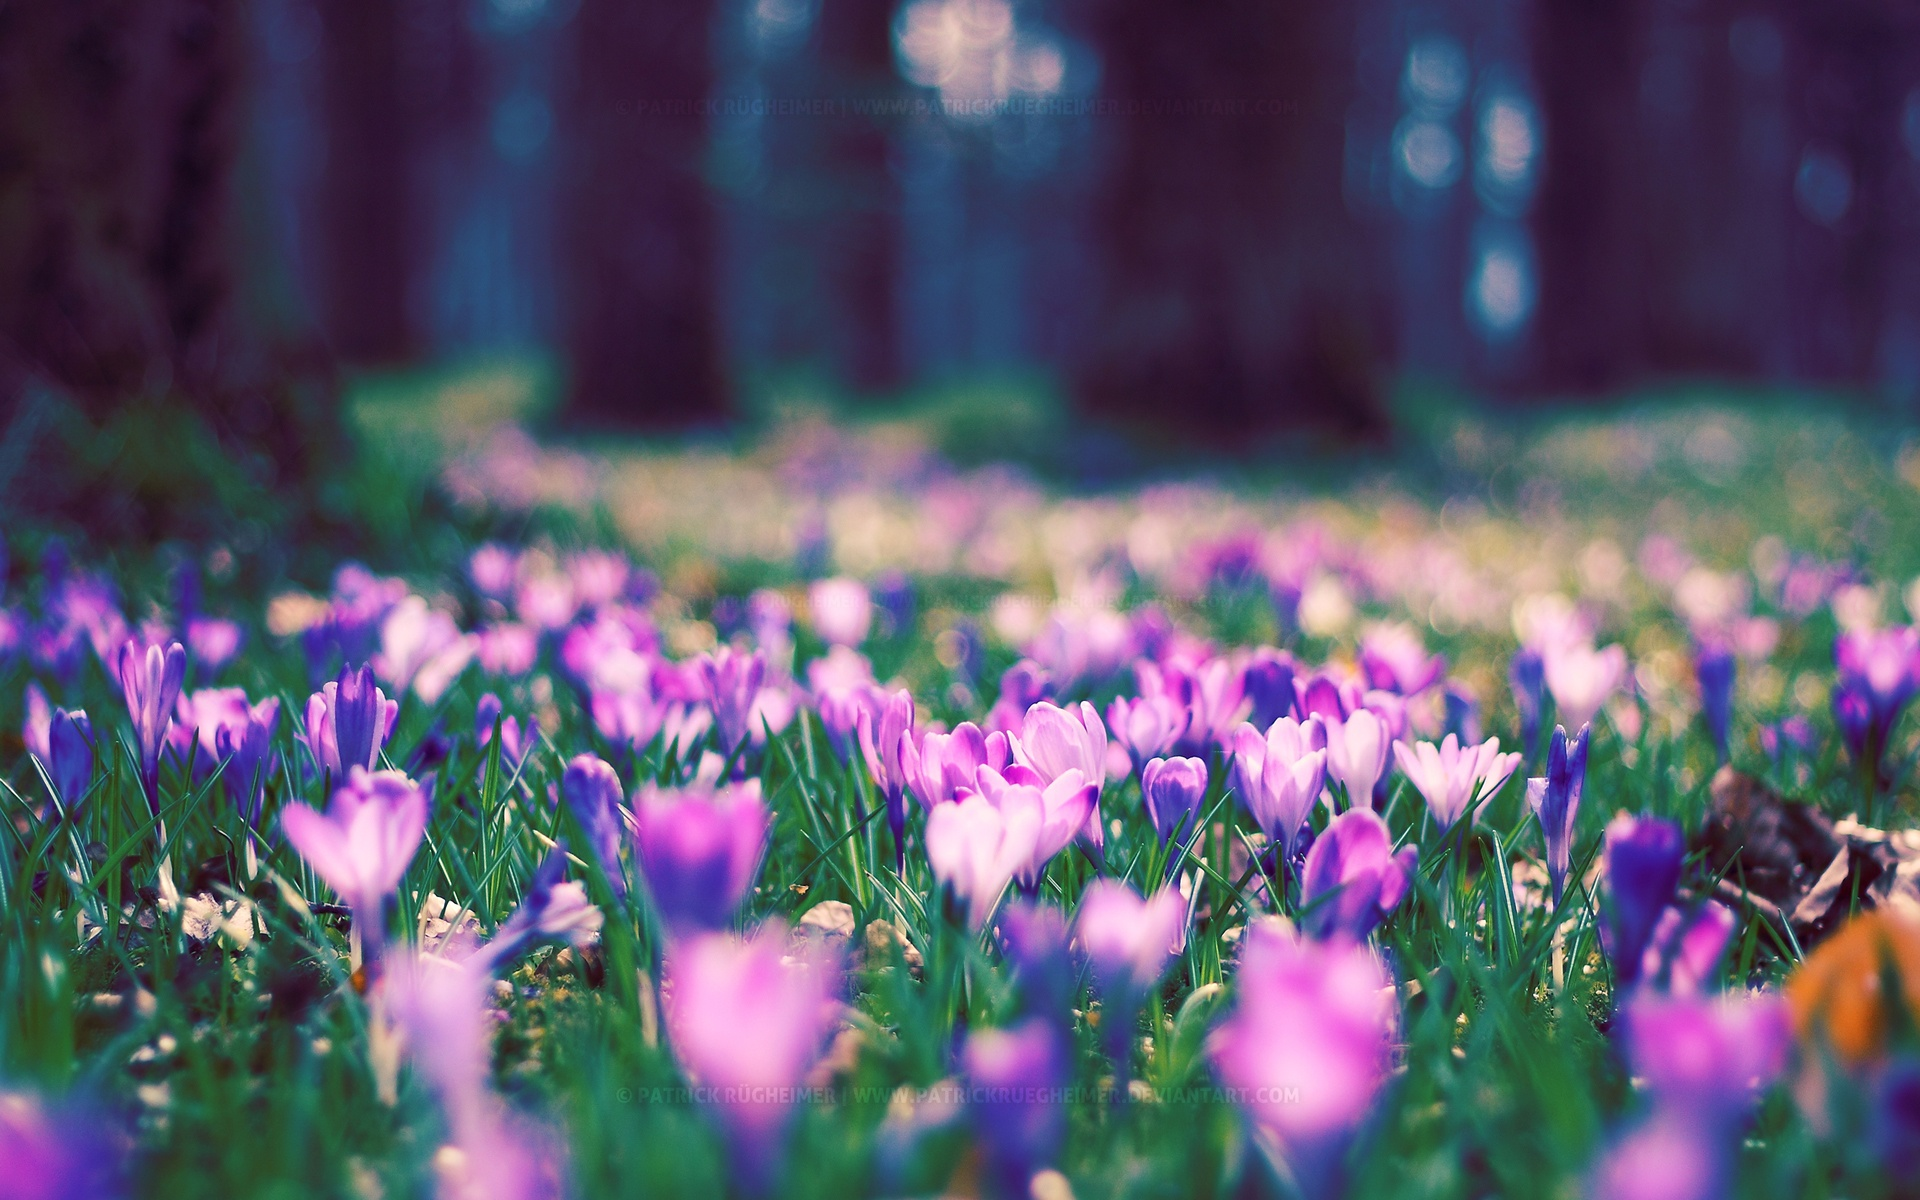 Spring Flower Park Wallpapers In Jpg Format For Free Download